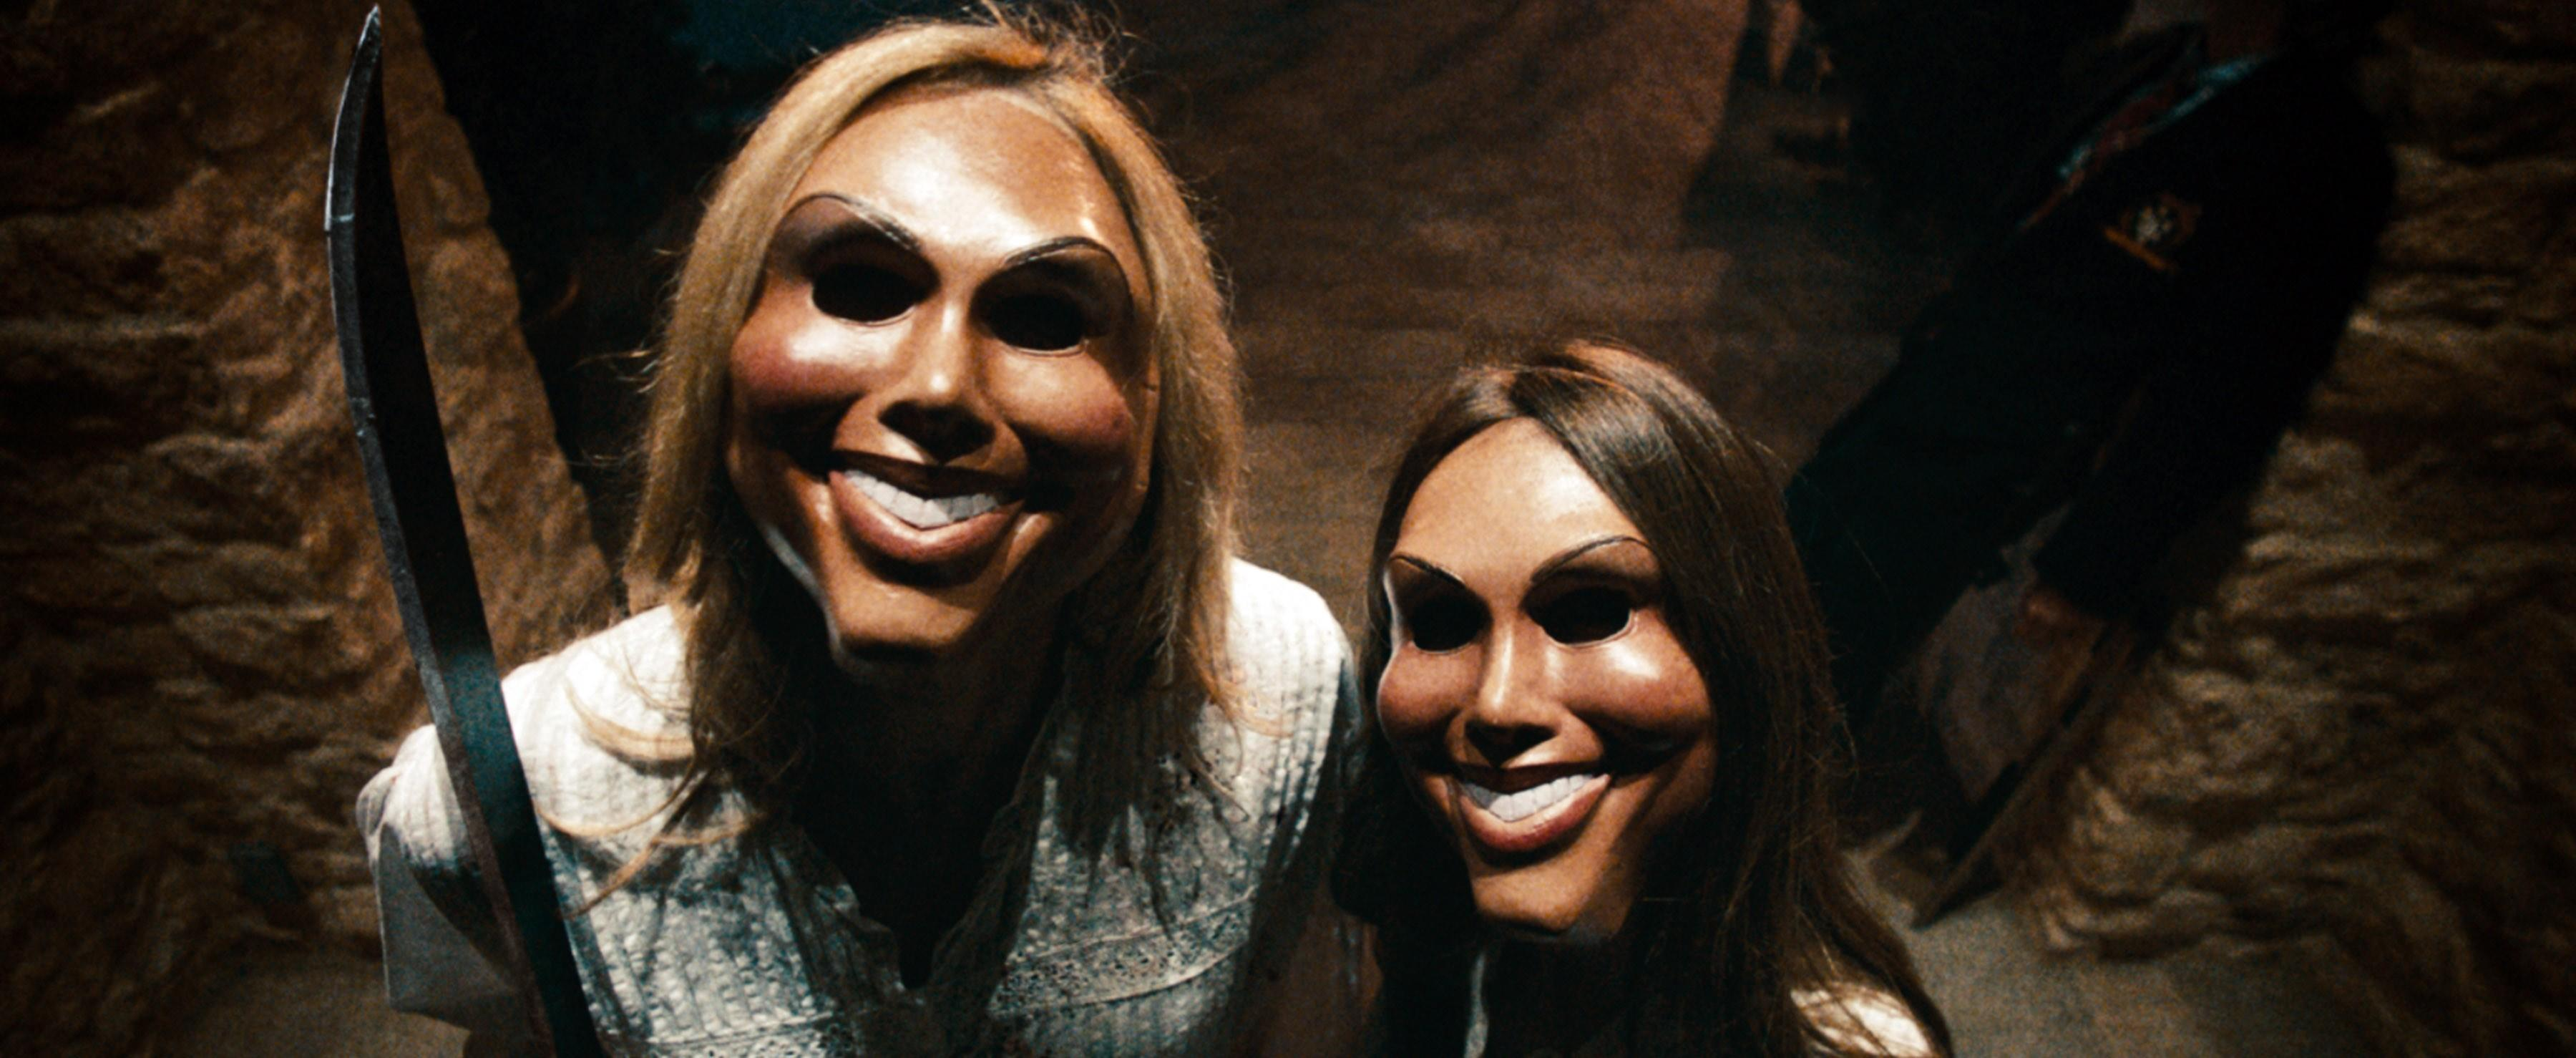 Ranking the Scariest Masks in Movies, from 10 to 1 | Fandango